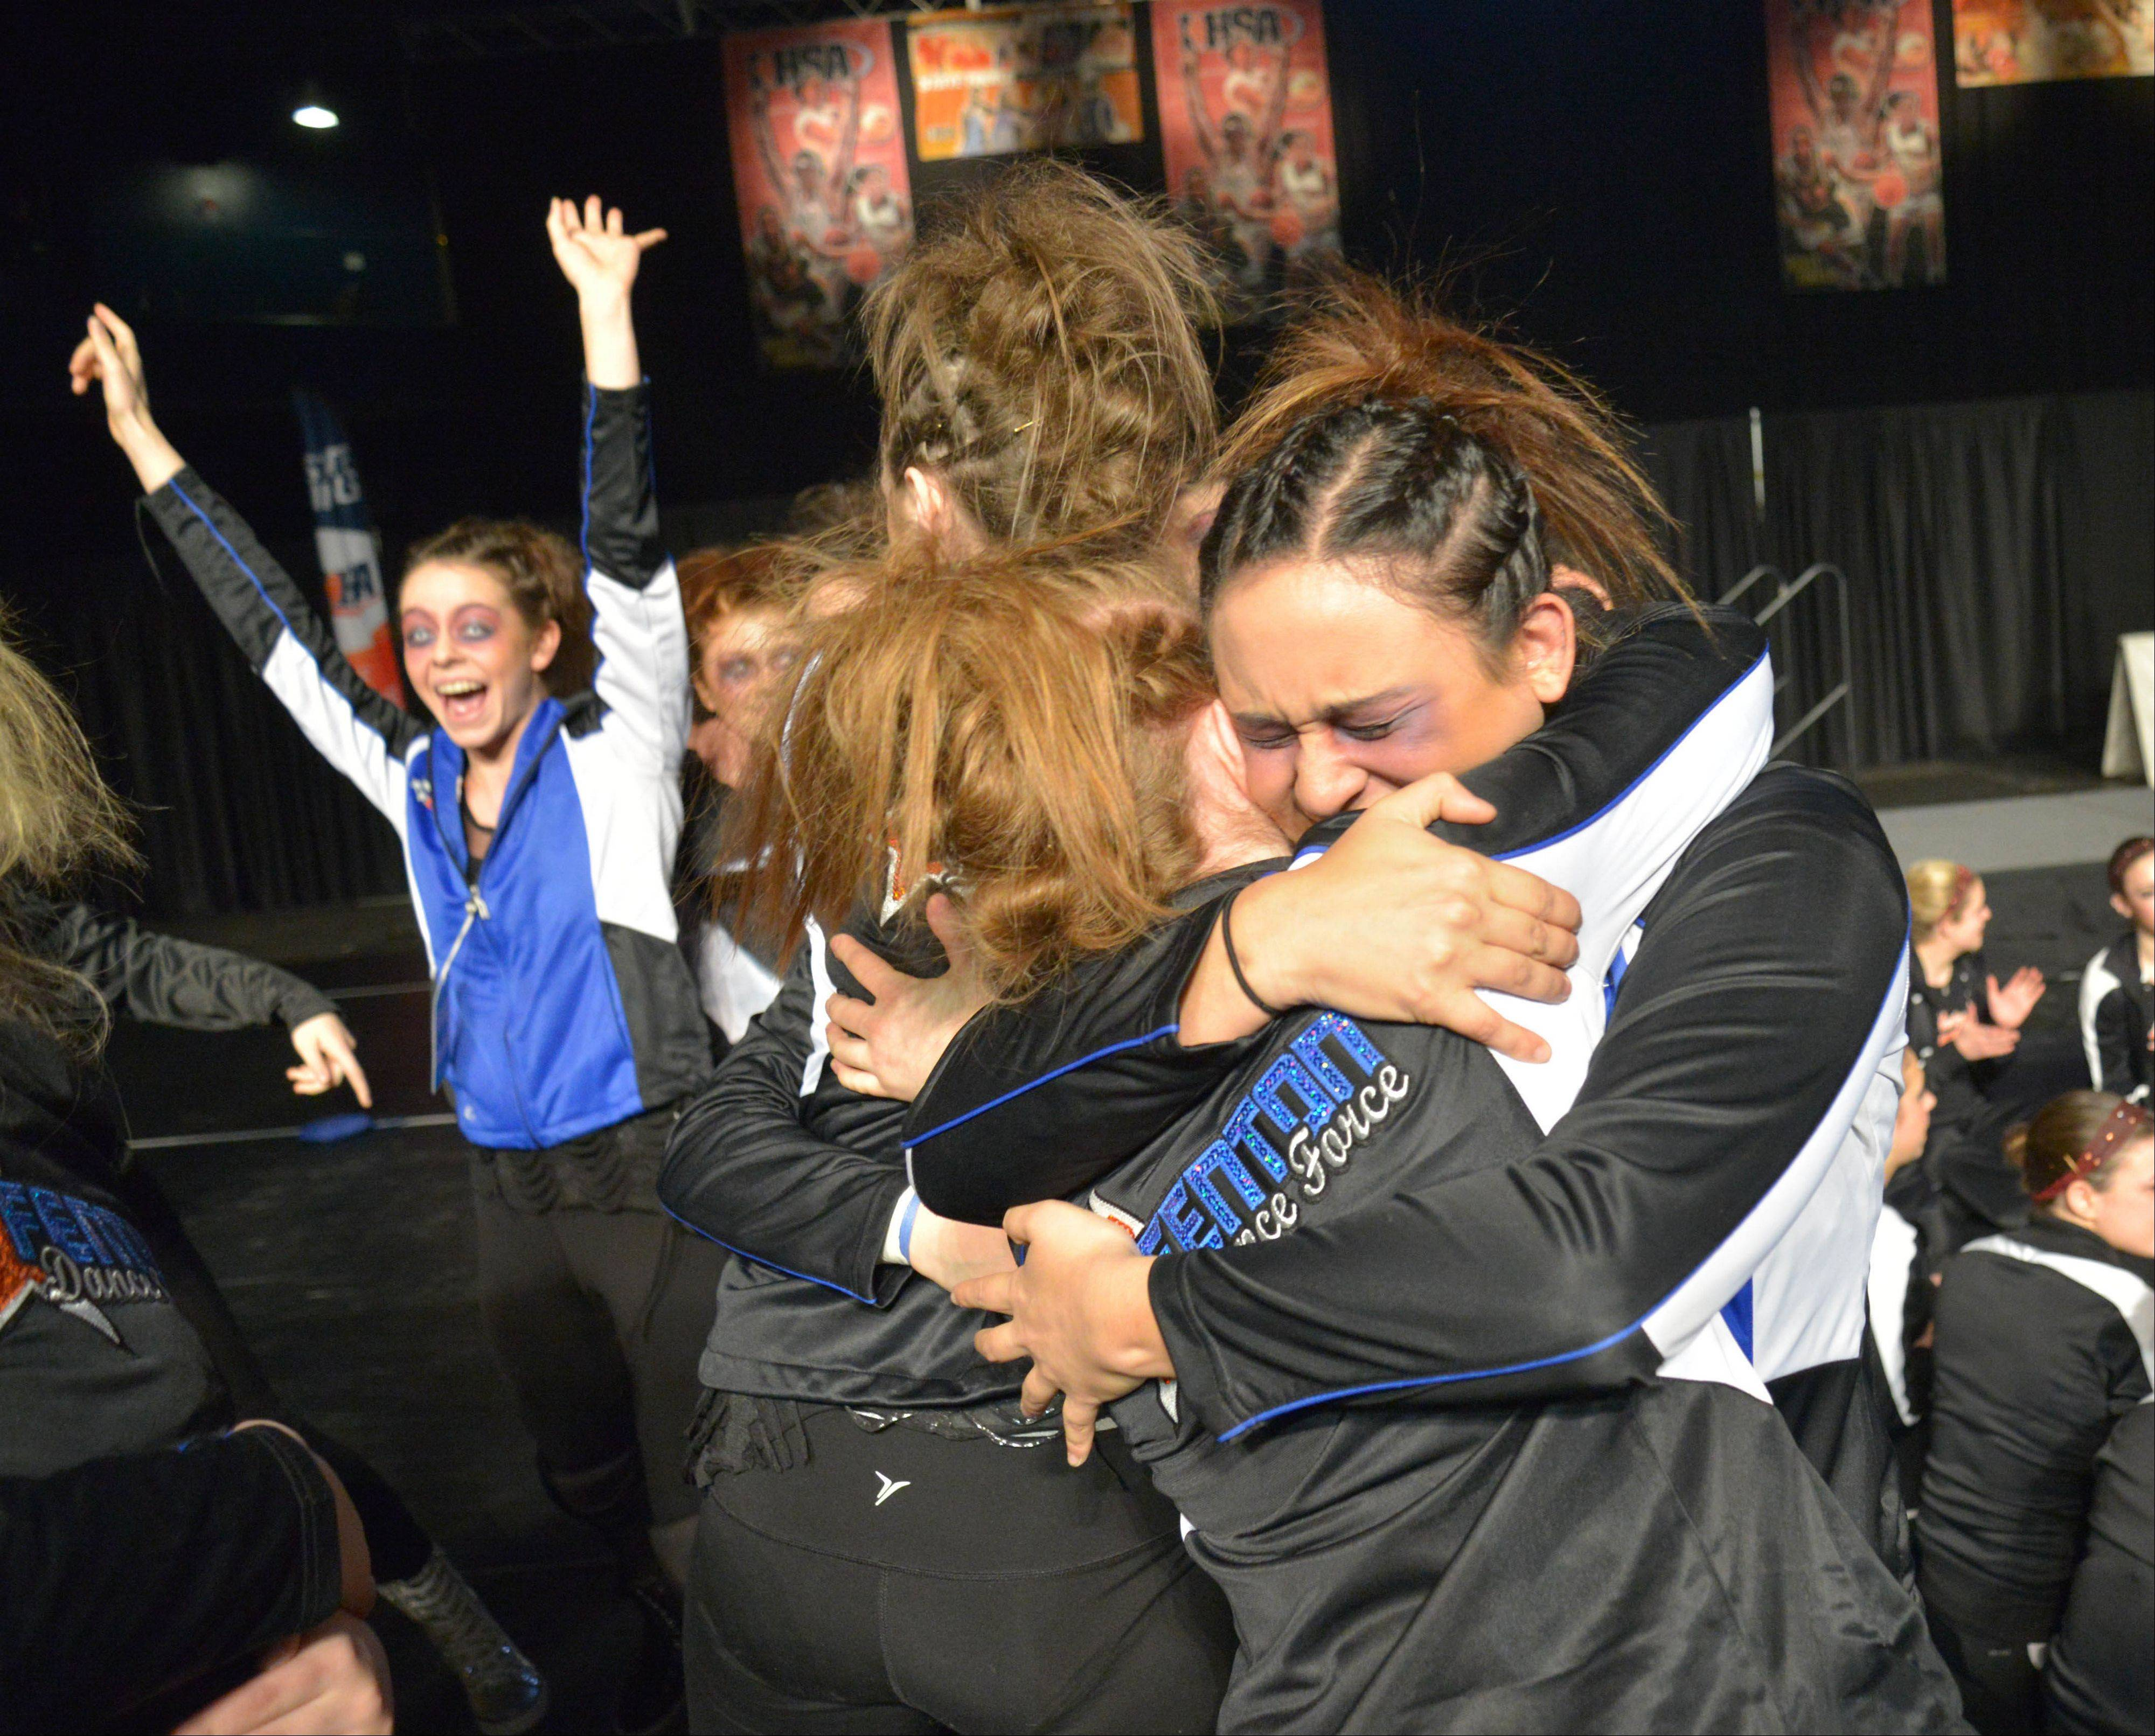 Emanuela Alexe, right, hugs Brittany Irizarry of Fenton High School after they won 3rd in the 2A IHSA Dance State Final at U.S. Cellular Coliseum in Bloomington Saturday. 90 teams vied for state champion at this event.